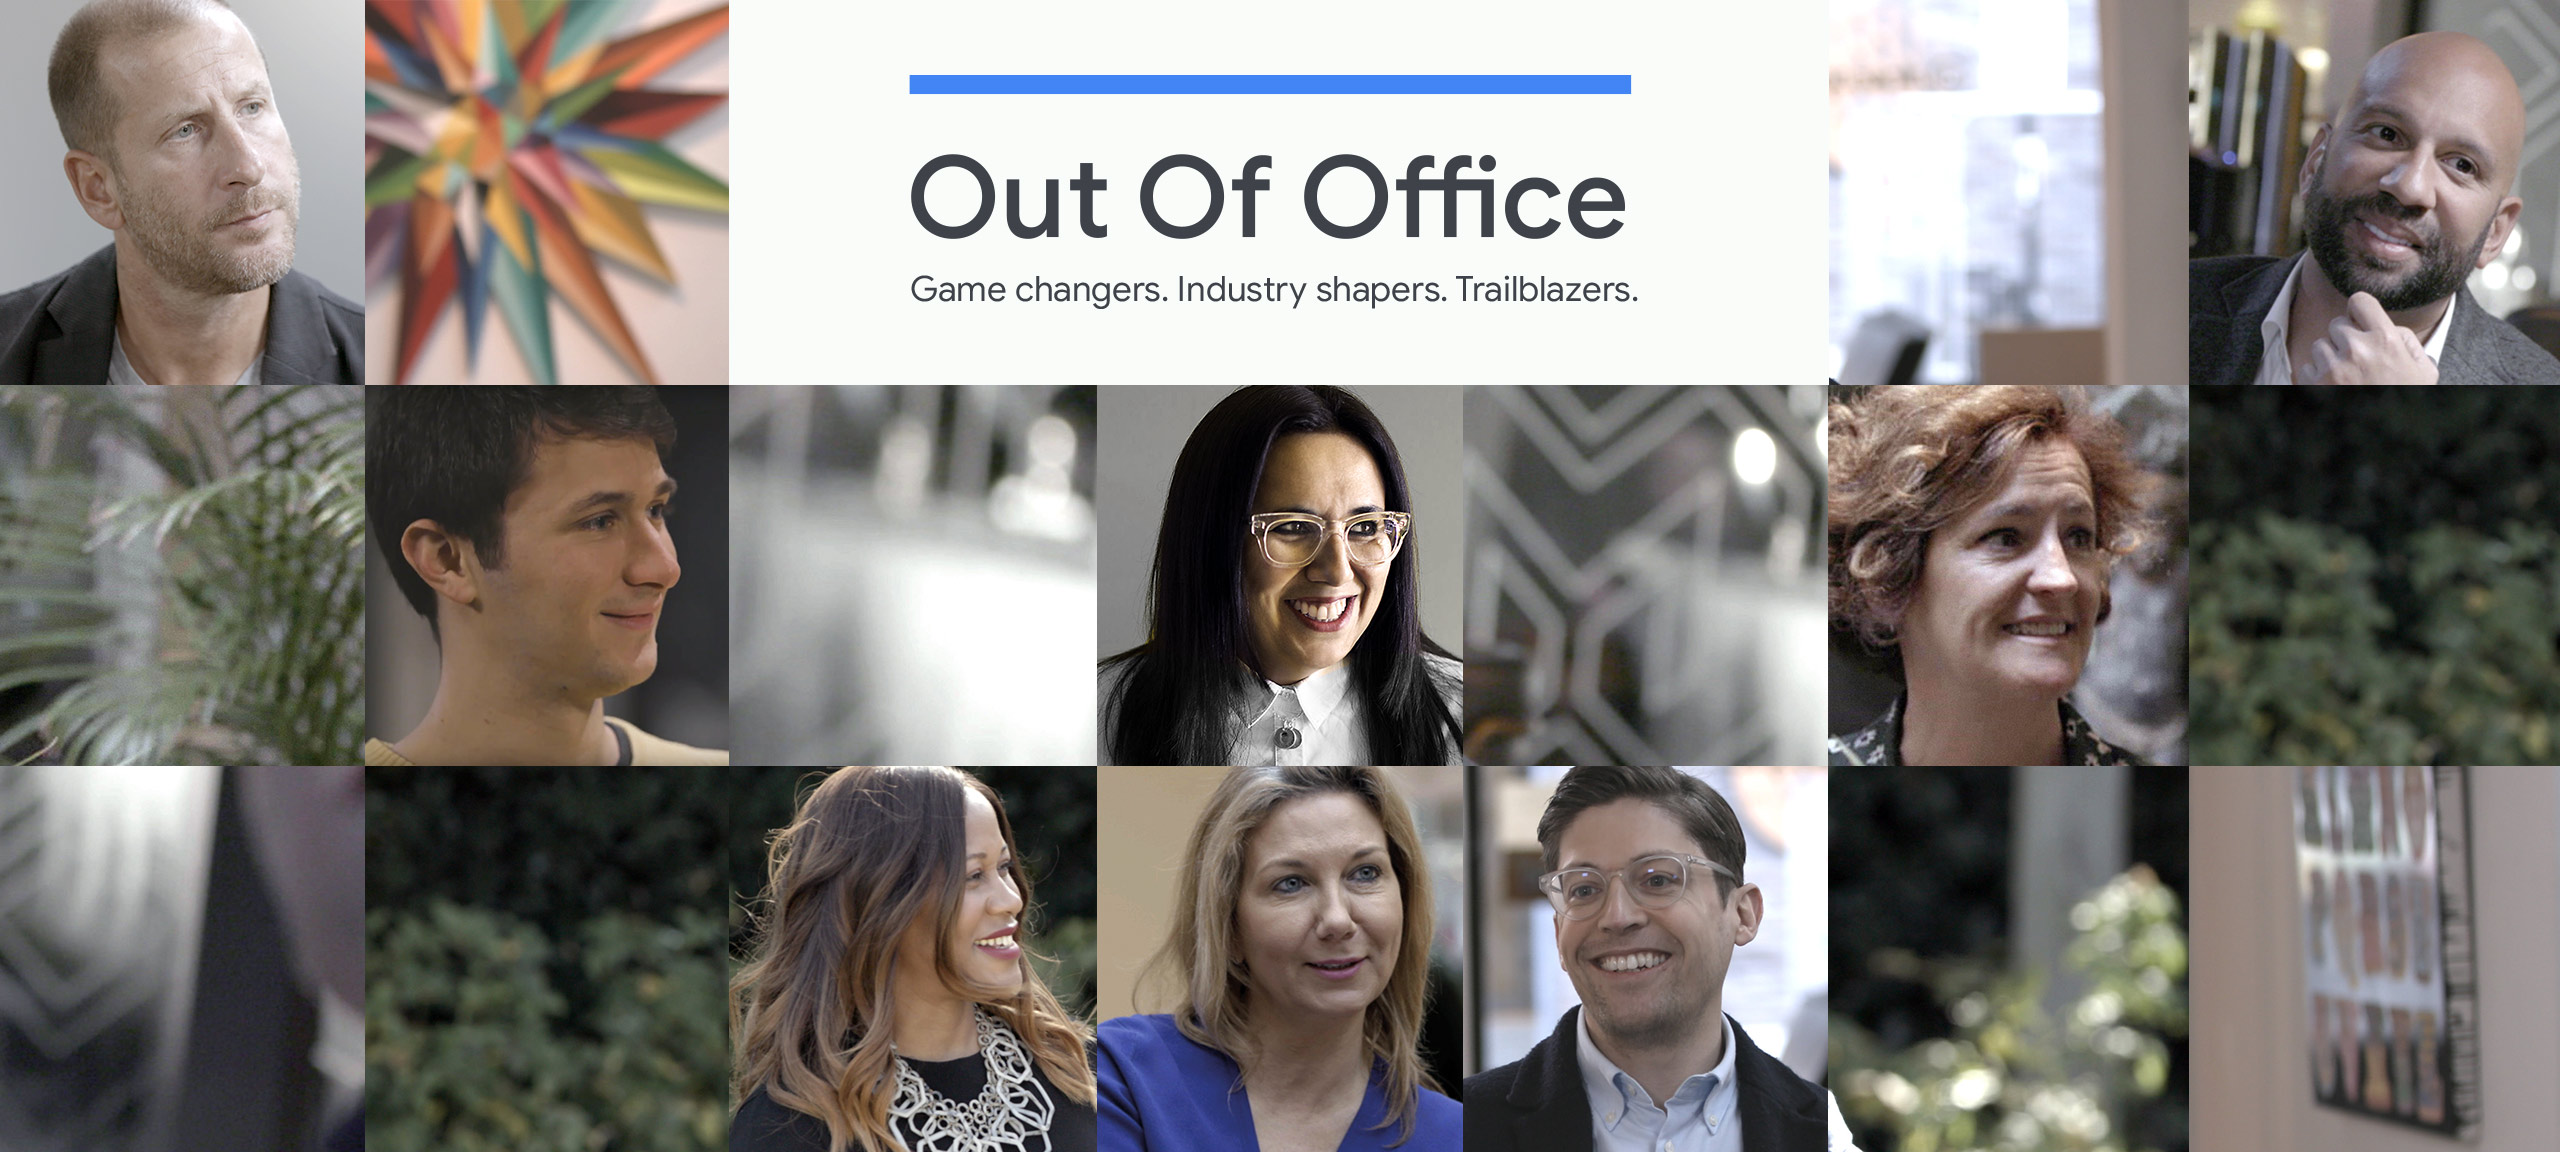 """Various people for the """"Out of Office"""" section"""